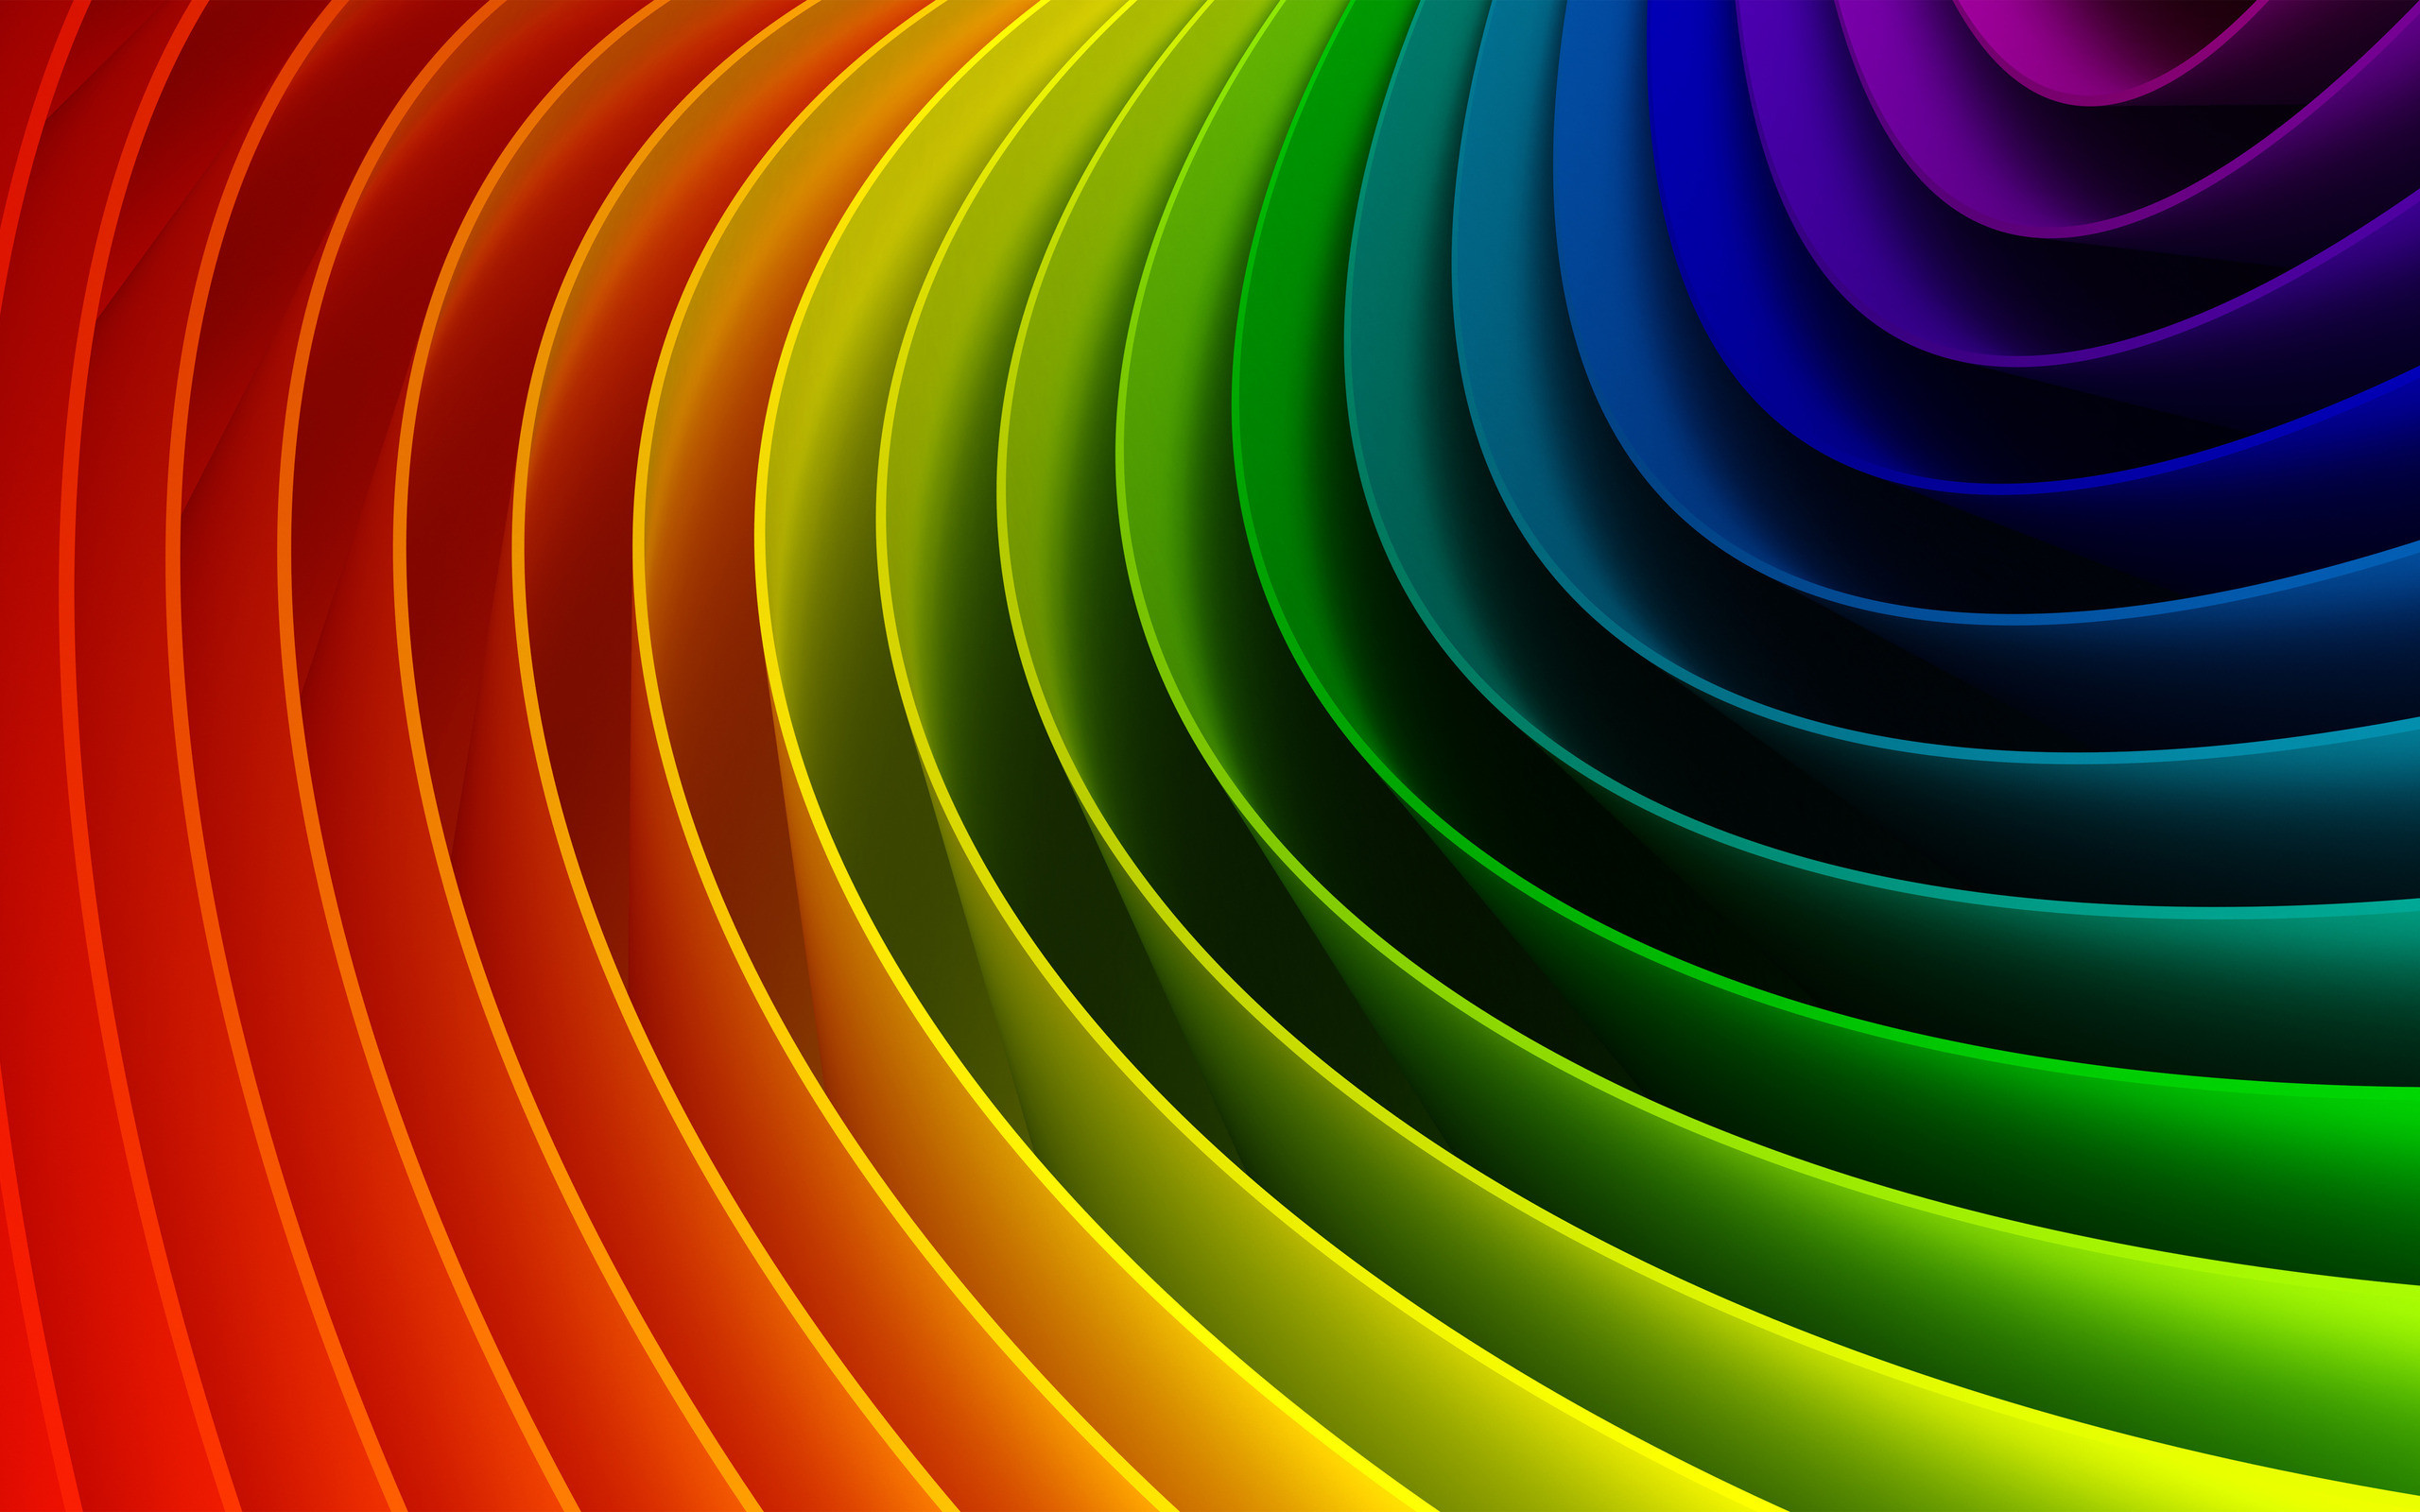 Color spectrum wallpapers and images – wallpapers, pictures, photos